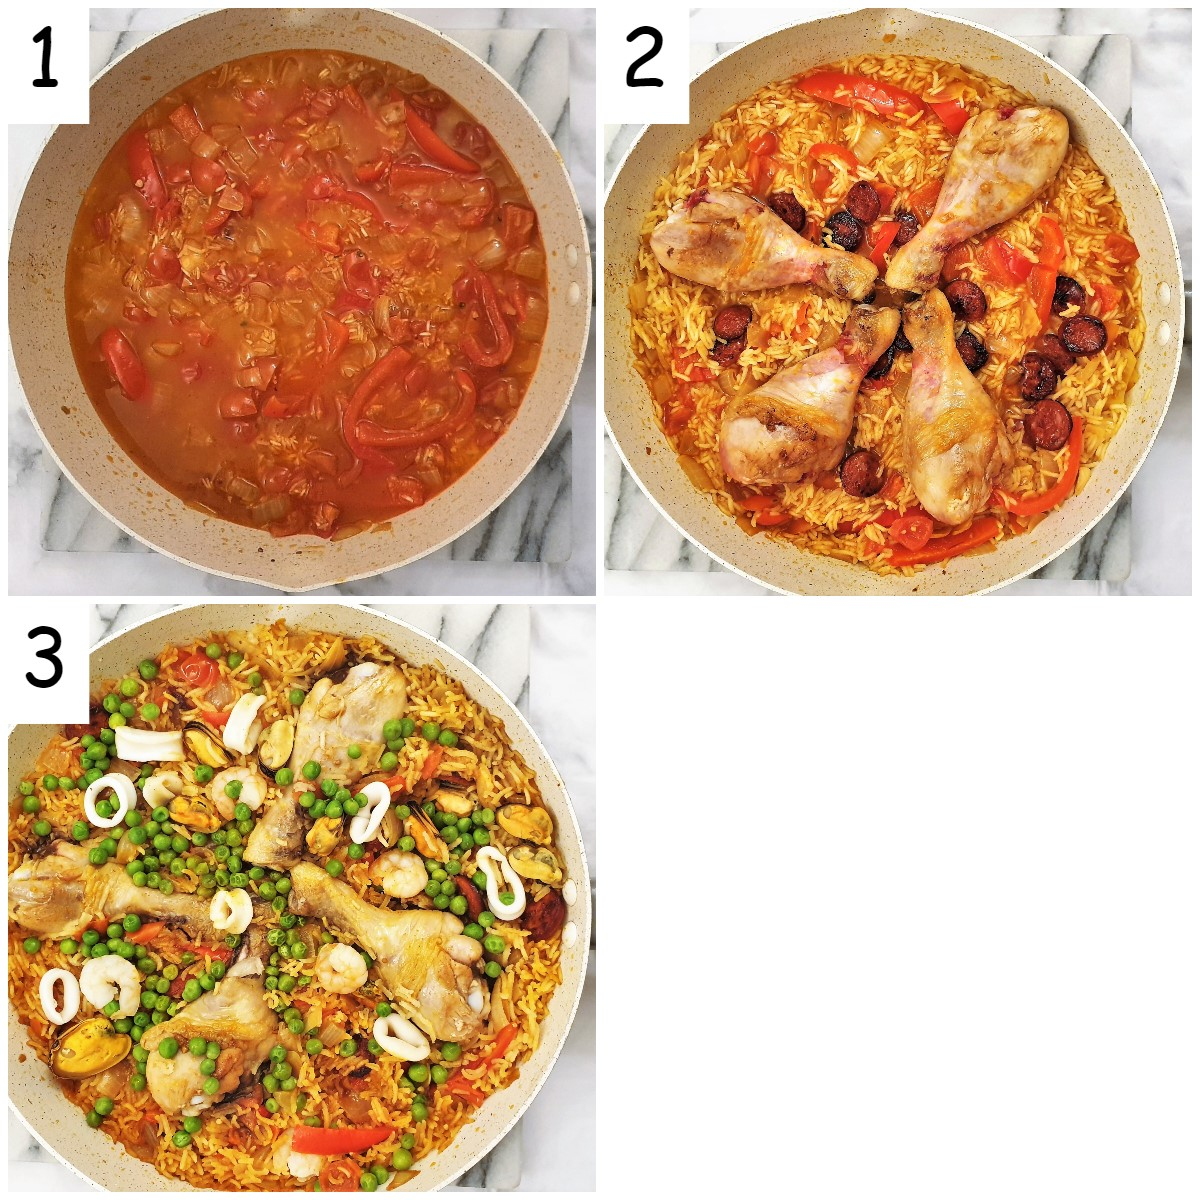 Steps for assembling the paella.